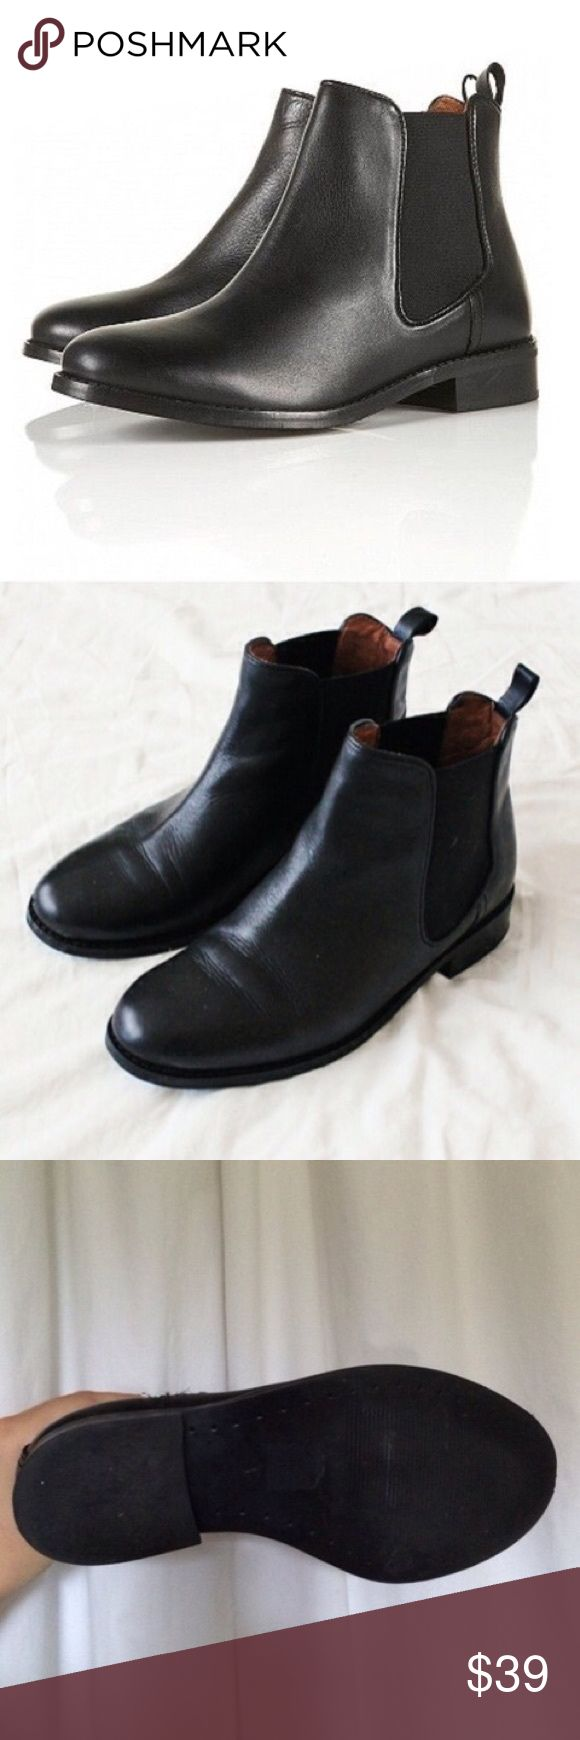 TopShop April Classic Black Leather Chelsea Boots TopShop Classic Black April Chelsea Boots. Genuine Leather Construction. Elastic Side Gusset. Slip-On Design. Ankle Length. Flat Heel. Size 38 or US 7.5. Used Condition. Similar Style to brands like: Joie, Rag and Bone, Free People, VINCE. Brandy Melville, Jeffrey Campbell, Sam Edelman, Alexander Wang, Helmut Lang, ACNE, Zara, Nasty Gal, Cheap Monday, La Garçonne, Totokaleo & Isabel Marant. Topshop Shoes Ankle Boots & Booties